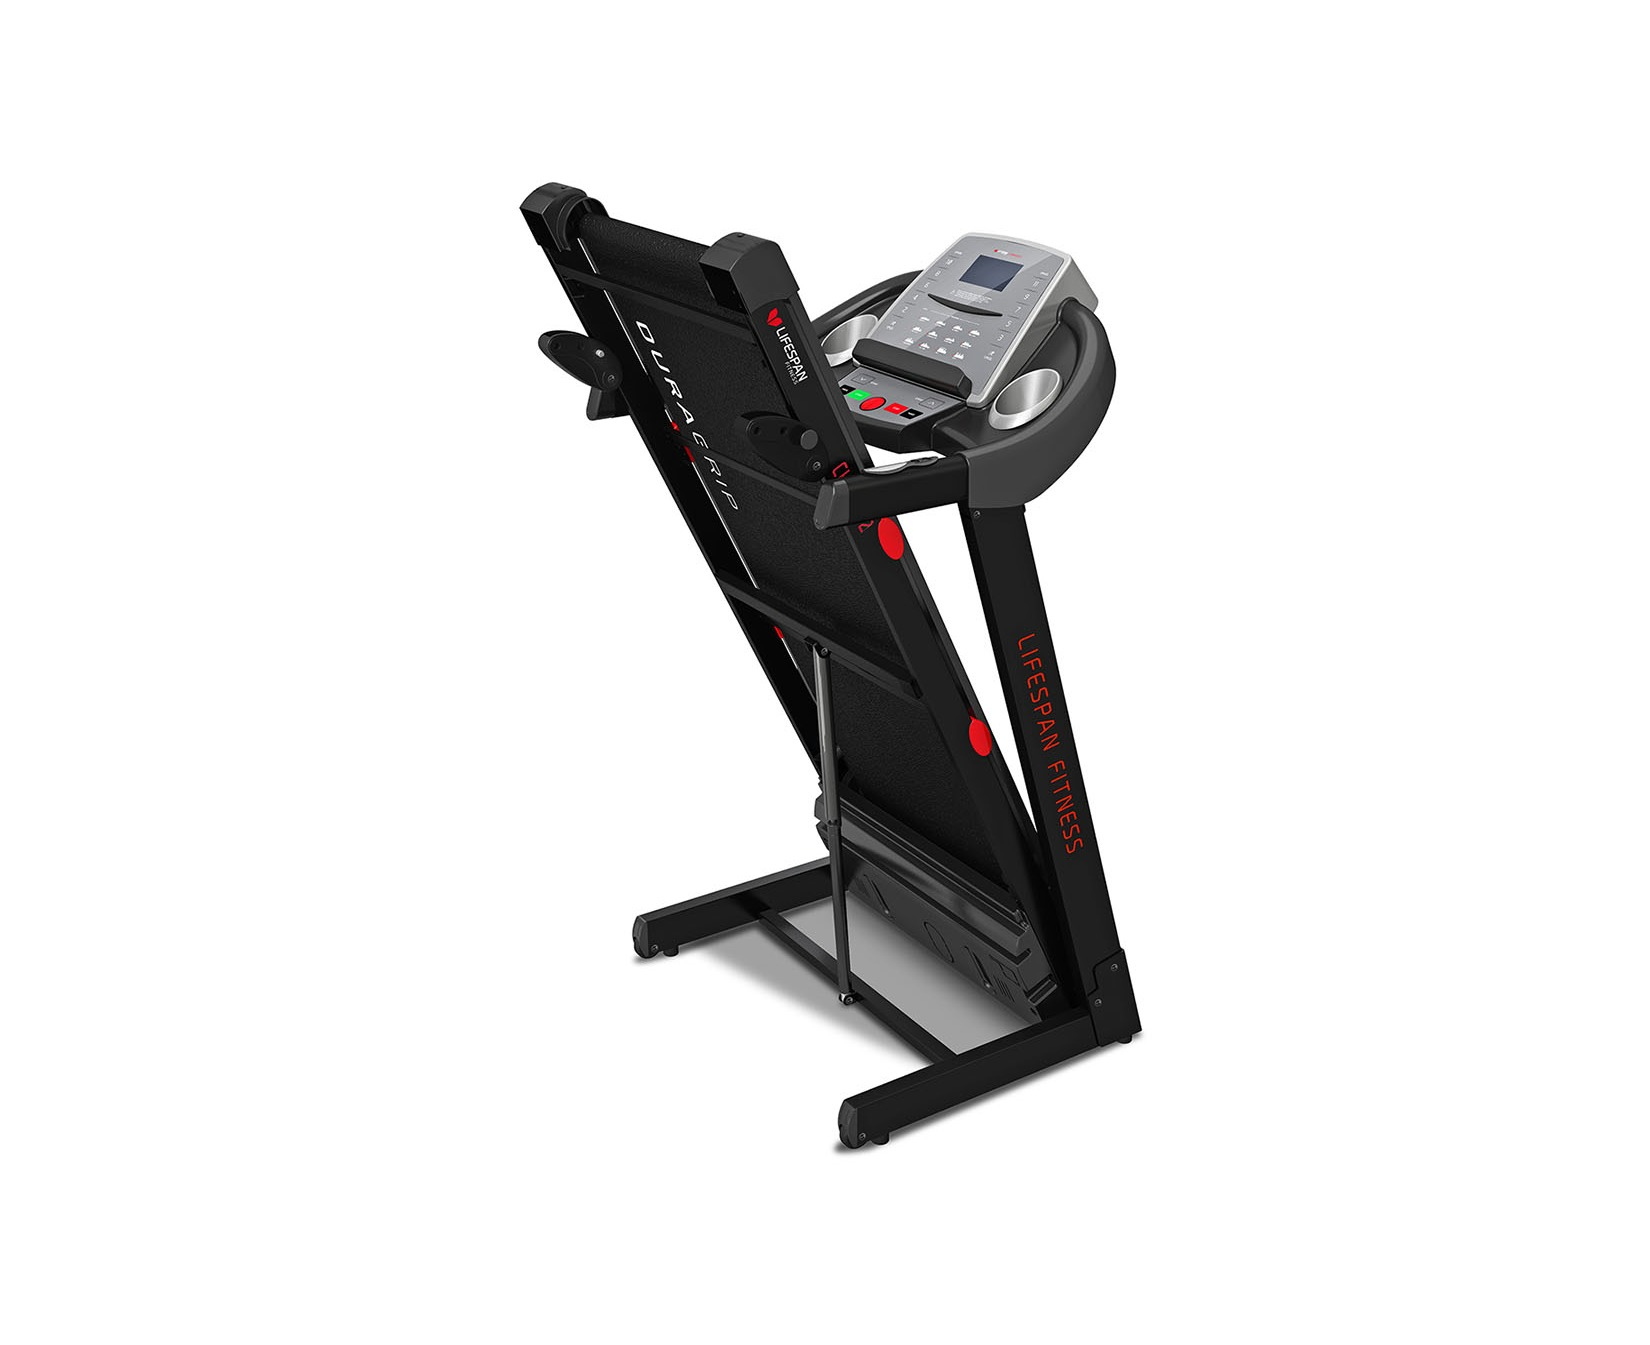 Discussion on this topic: 5 Treadmill Hacks That Can Help Shave , 5-treadmill-hacks-that-can-help-shave/